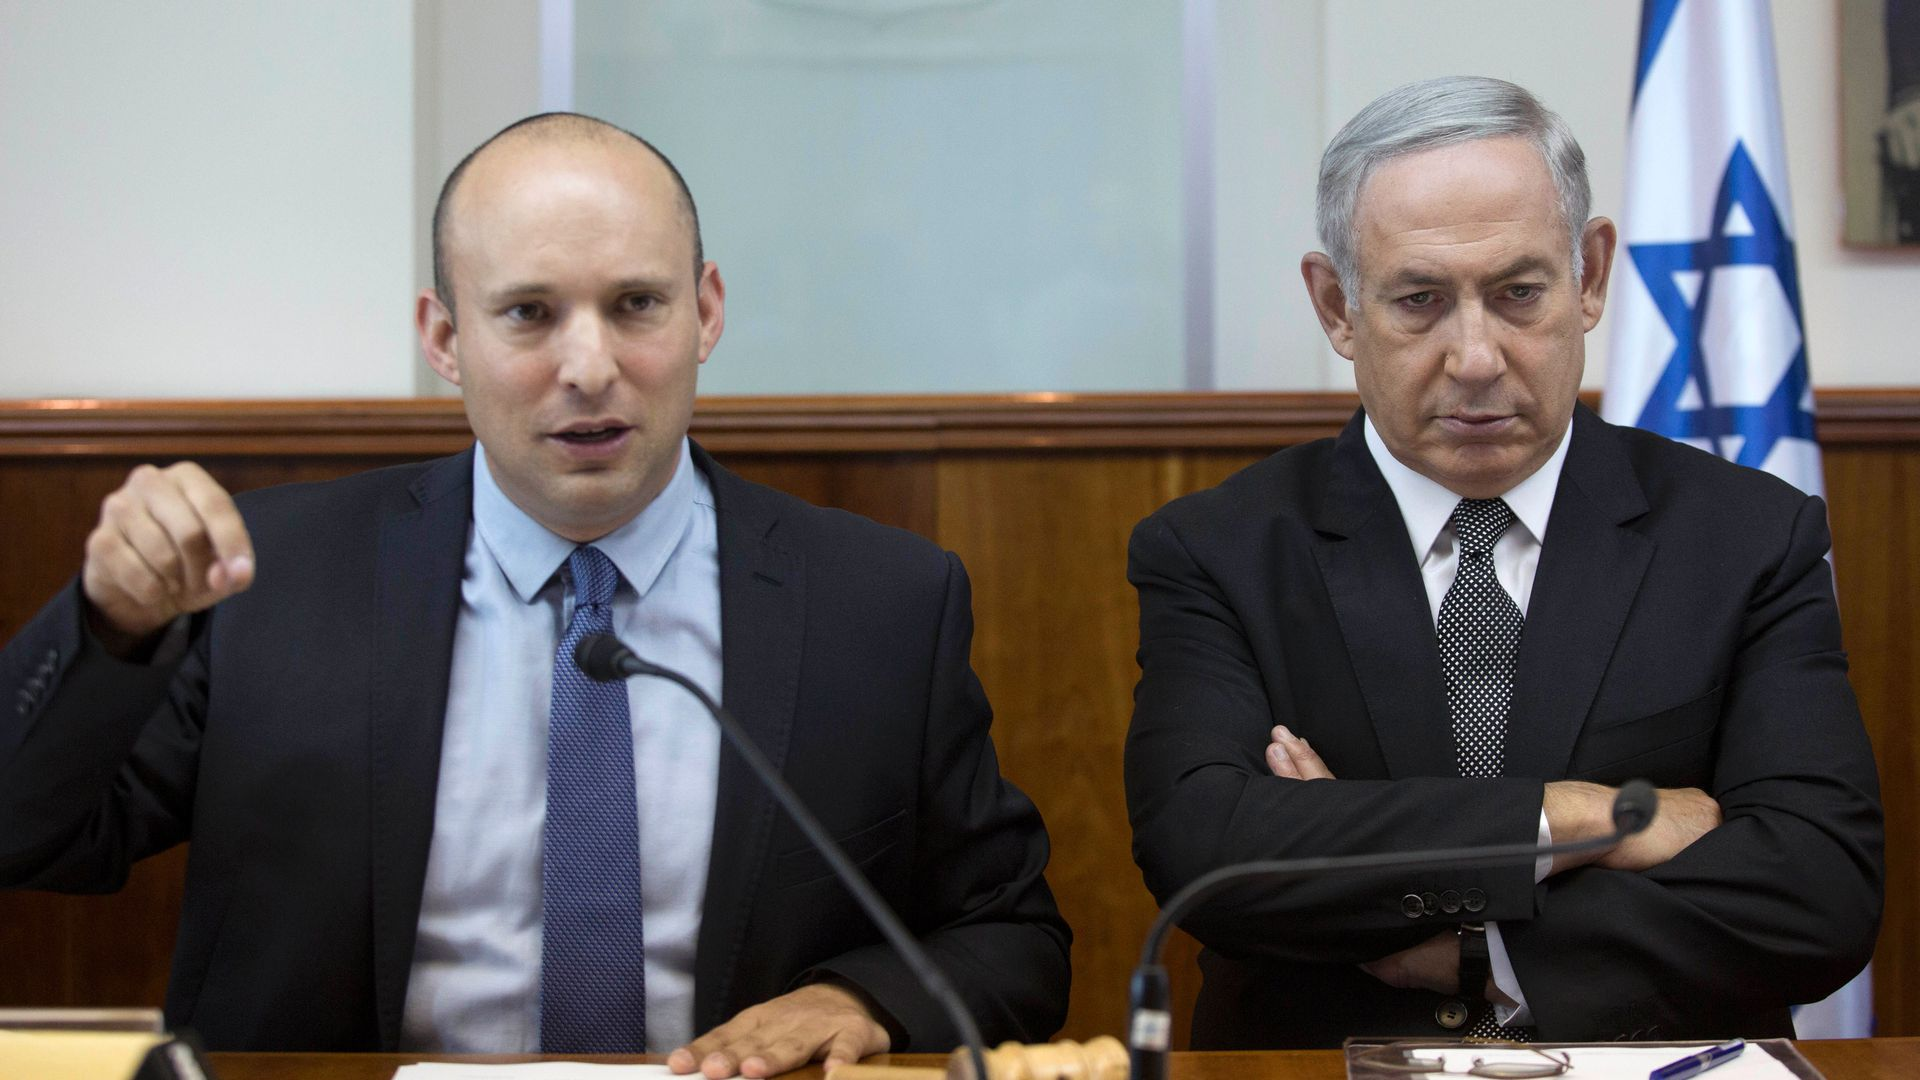 Netanyahu brings political rival into Cabinet to thwart Gantz